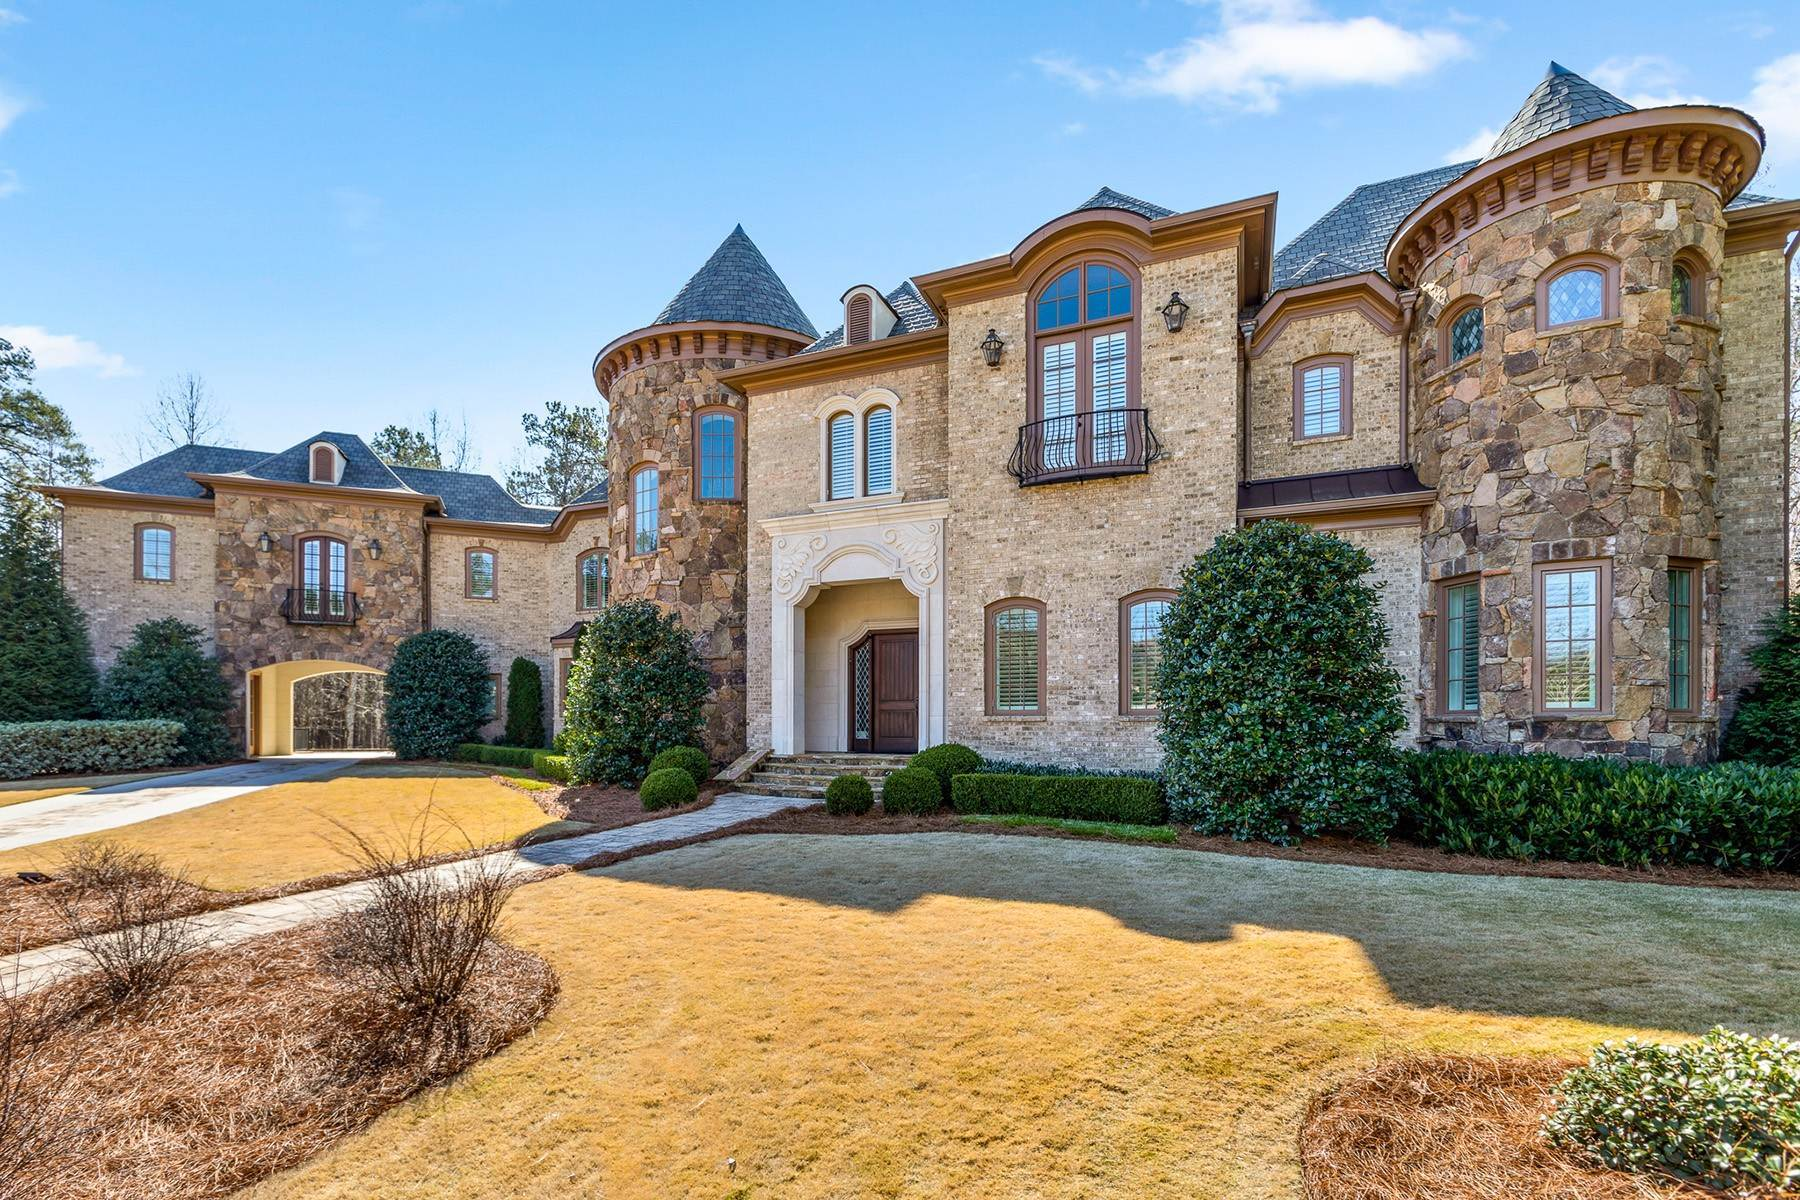 Single Family Homes for Sale at Exquisite Custom Home In Gated Community Near The Battery 3660 Rivers Call Boulevard Atlanta, Georgia 30339 United States